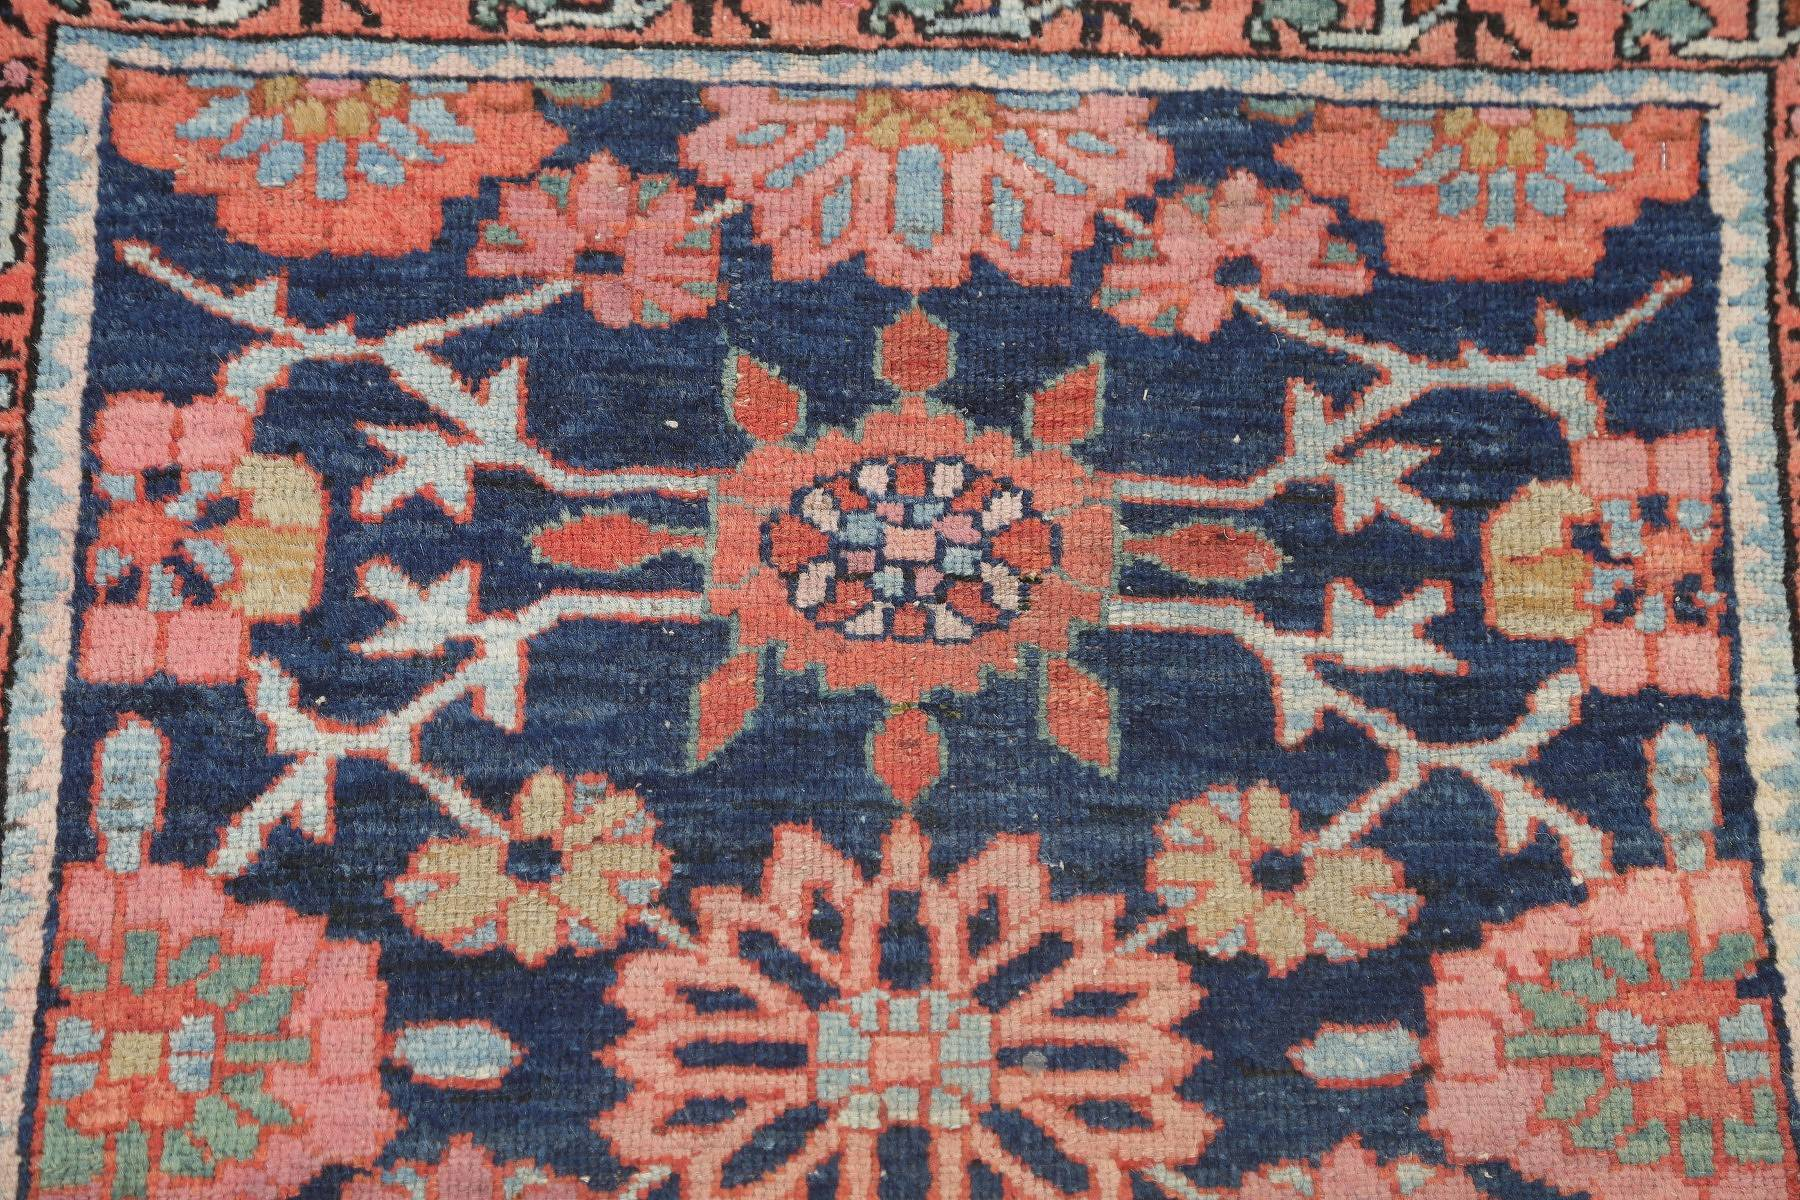 Antique Geometric Blue Malayer Persian Hand-Knotted 2x4 Wool Rug